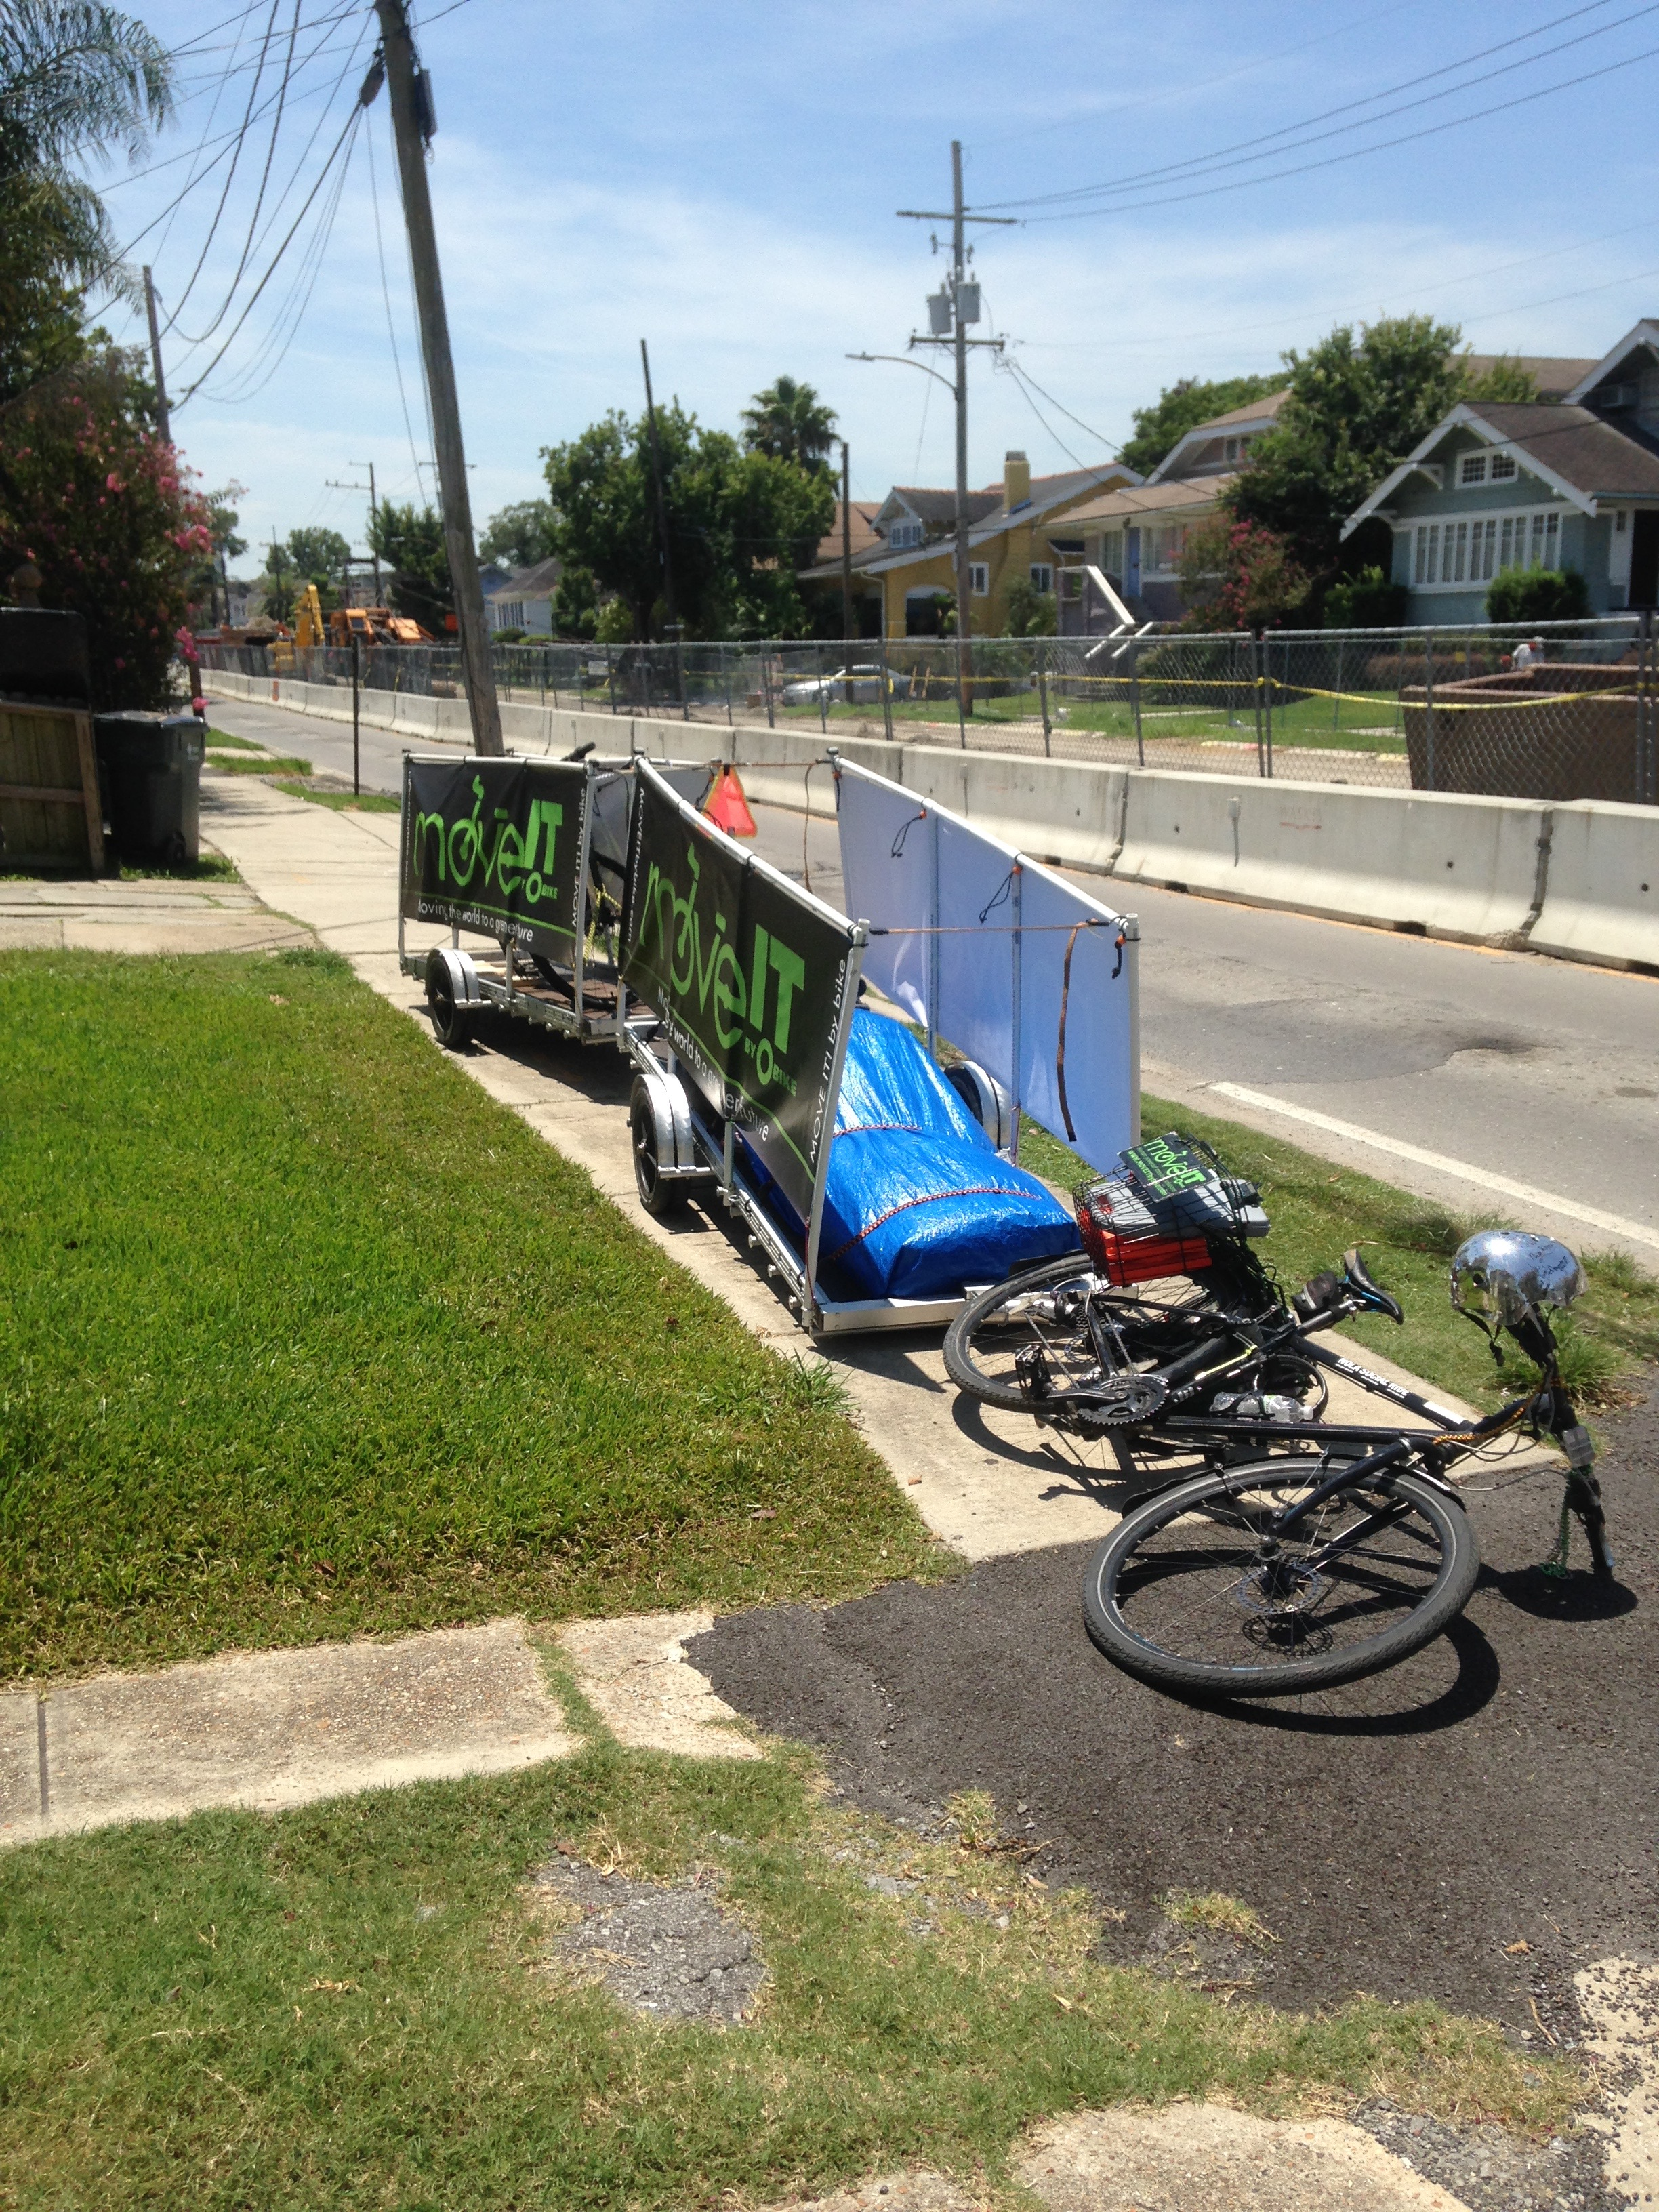 One bike pulls both of our trailers, one bicycle and our moving equipment to and from the job.